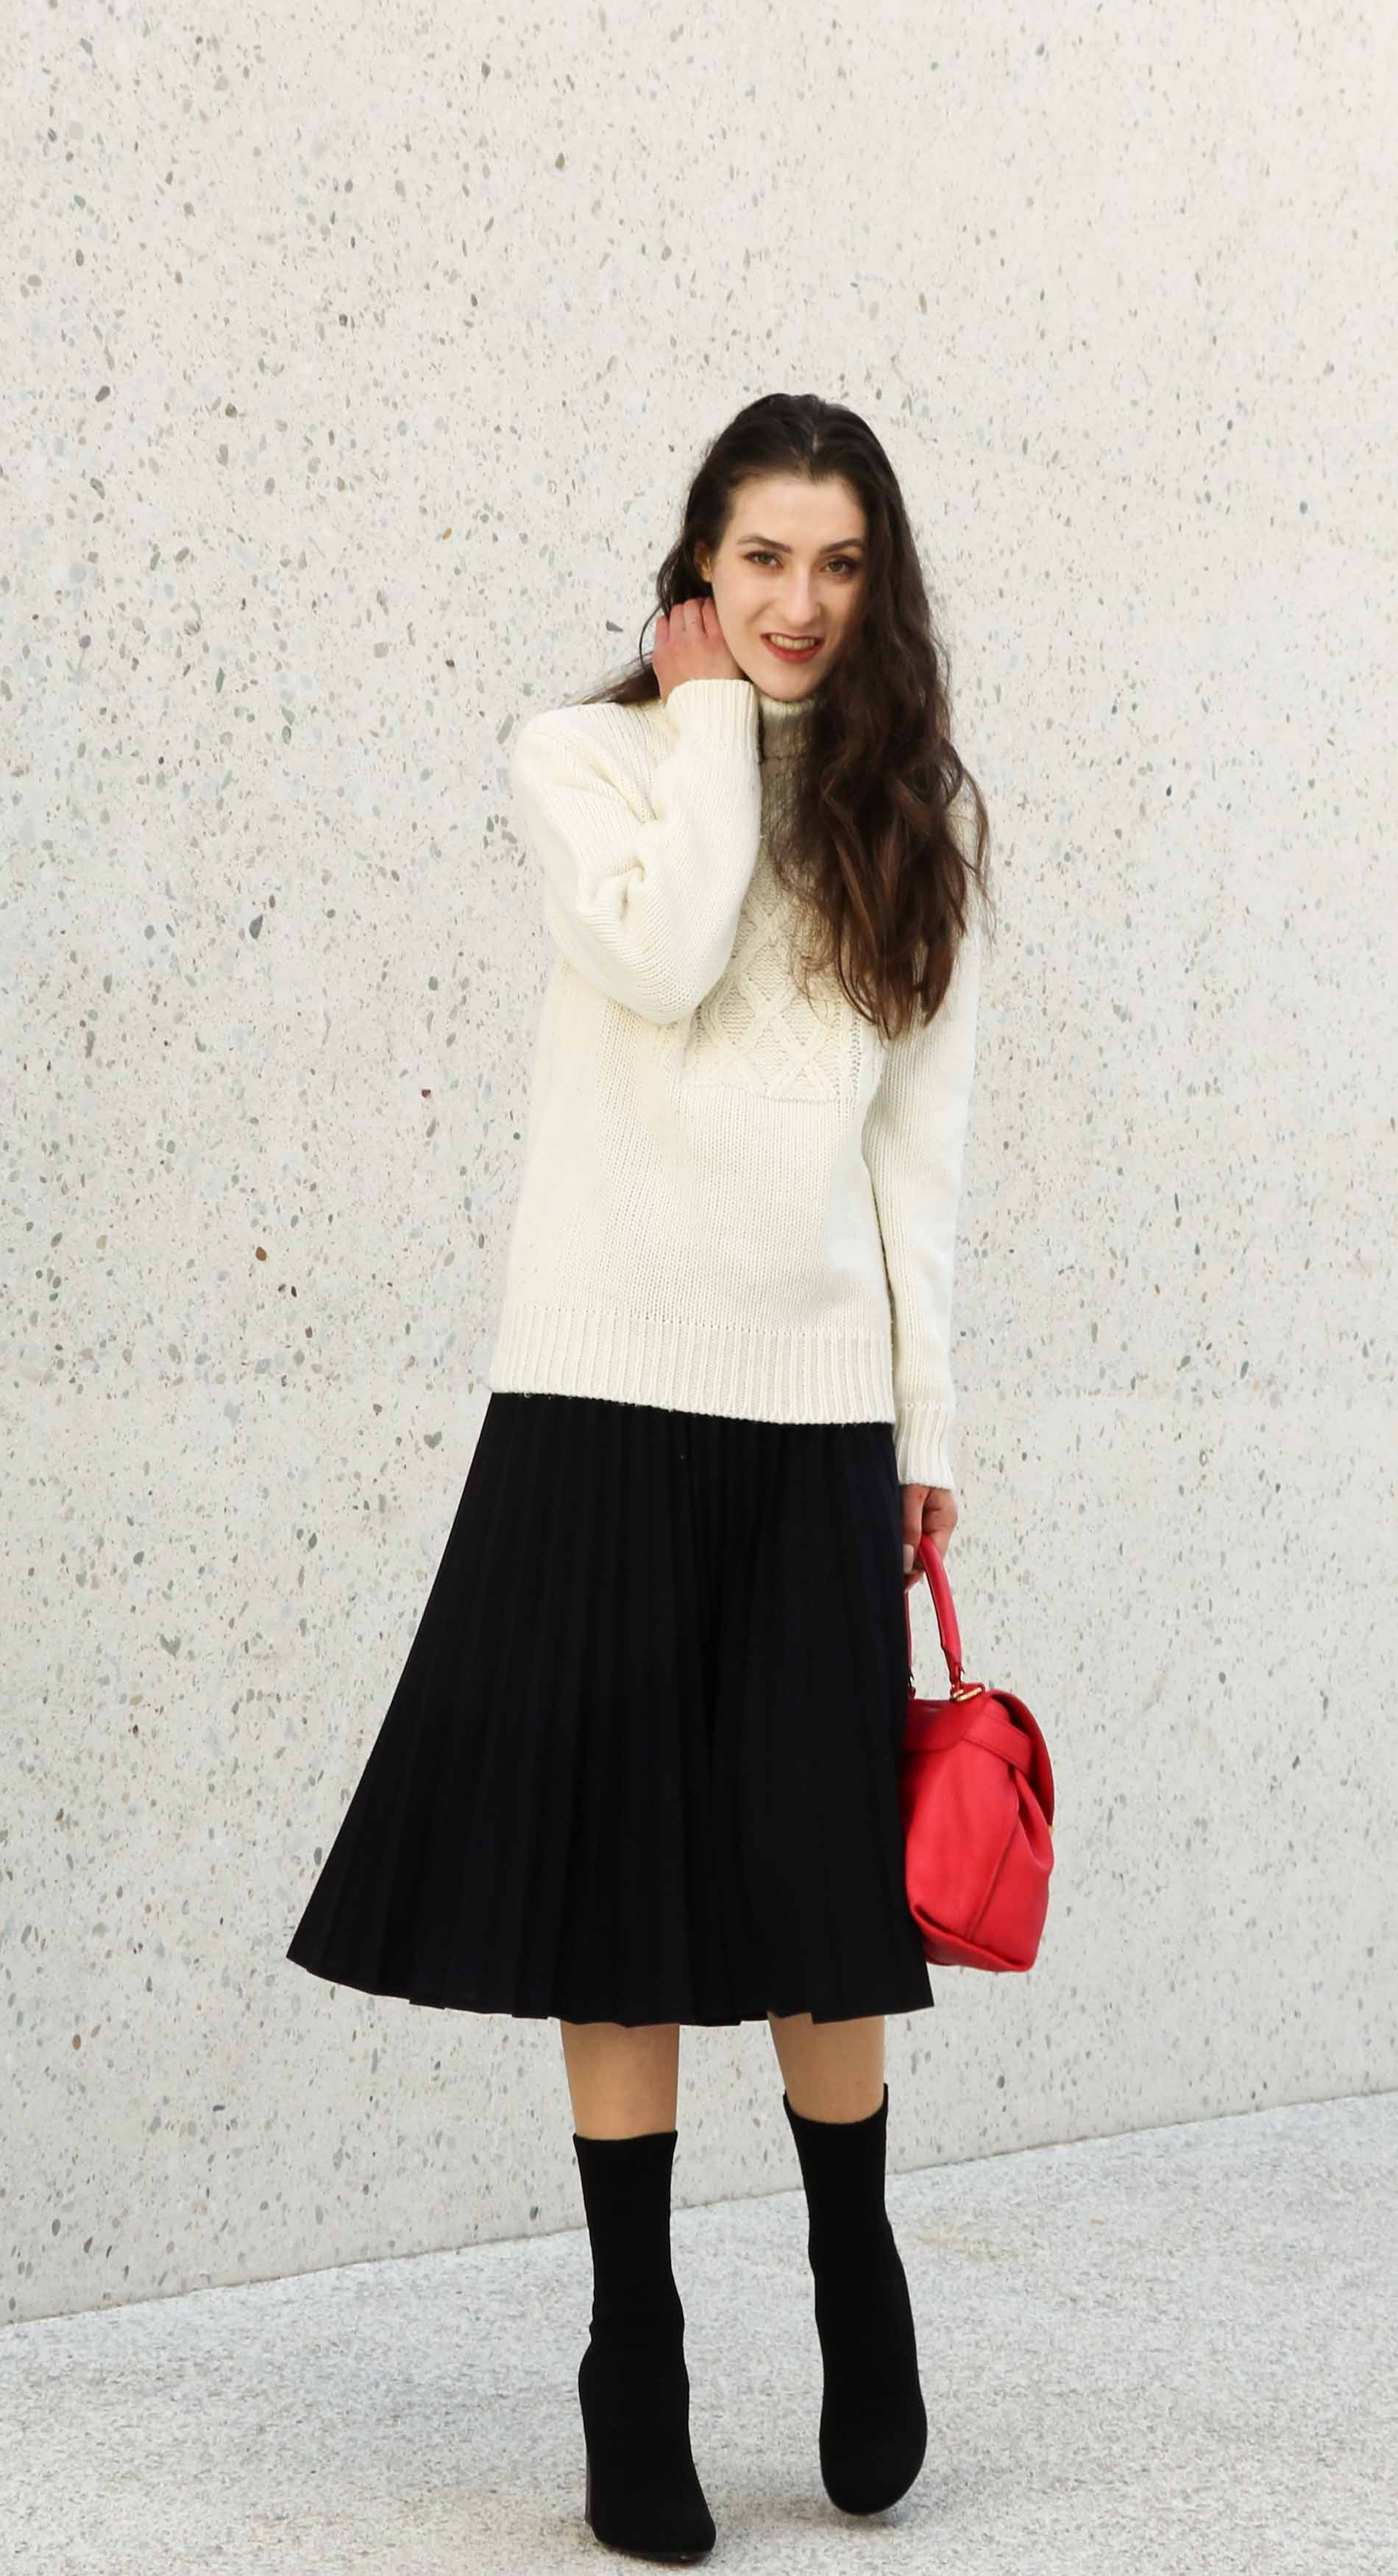 Fashion Blogger Veronika Lipar of Brunette from Wall Street dressed in white oversized turtleneck sweater, black midi skirt with pleats, pink top handle bag from See by Chloe and black sock boots from Elena Iachi this winter